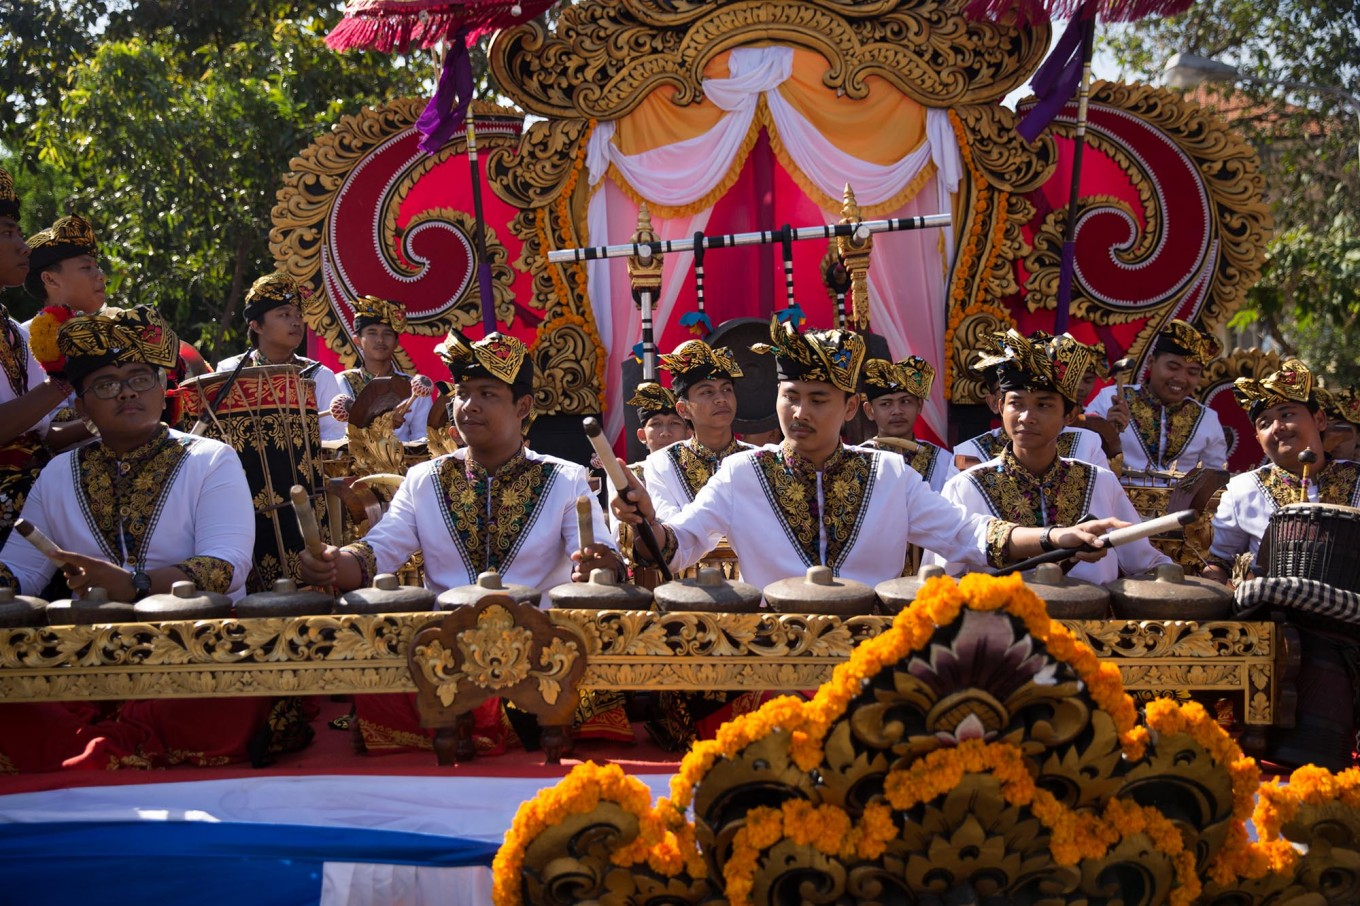 Young Balinese men play in a gambean (Balinese orchestra) during the opening of the 39th Bali Art Festival at the Bajra Sandhi Monument in Denpasar. JP/Agung Parameswara